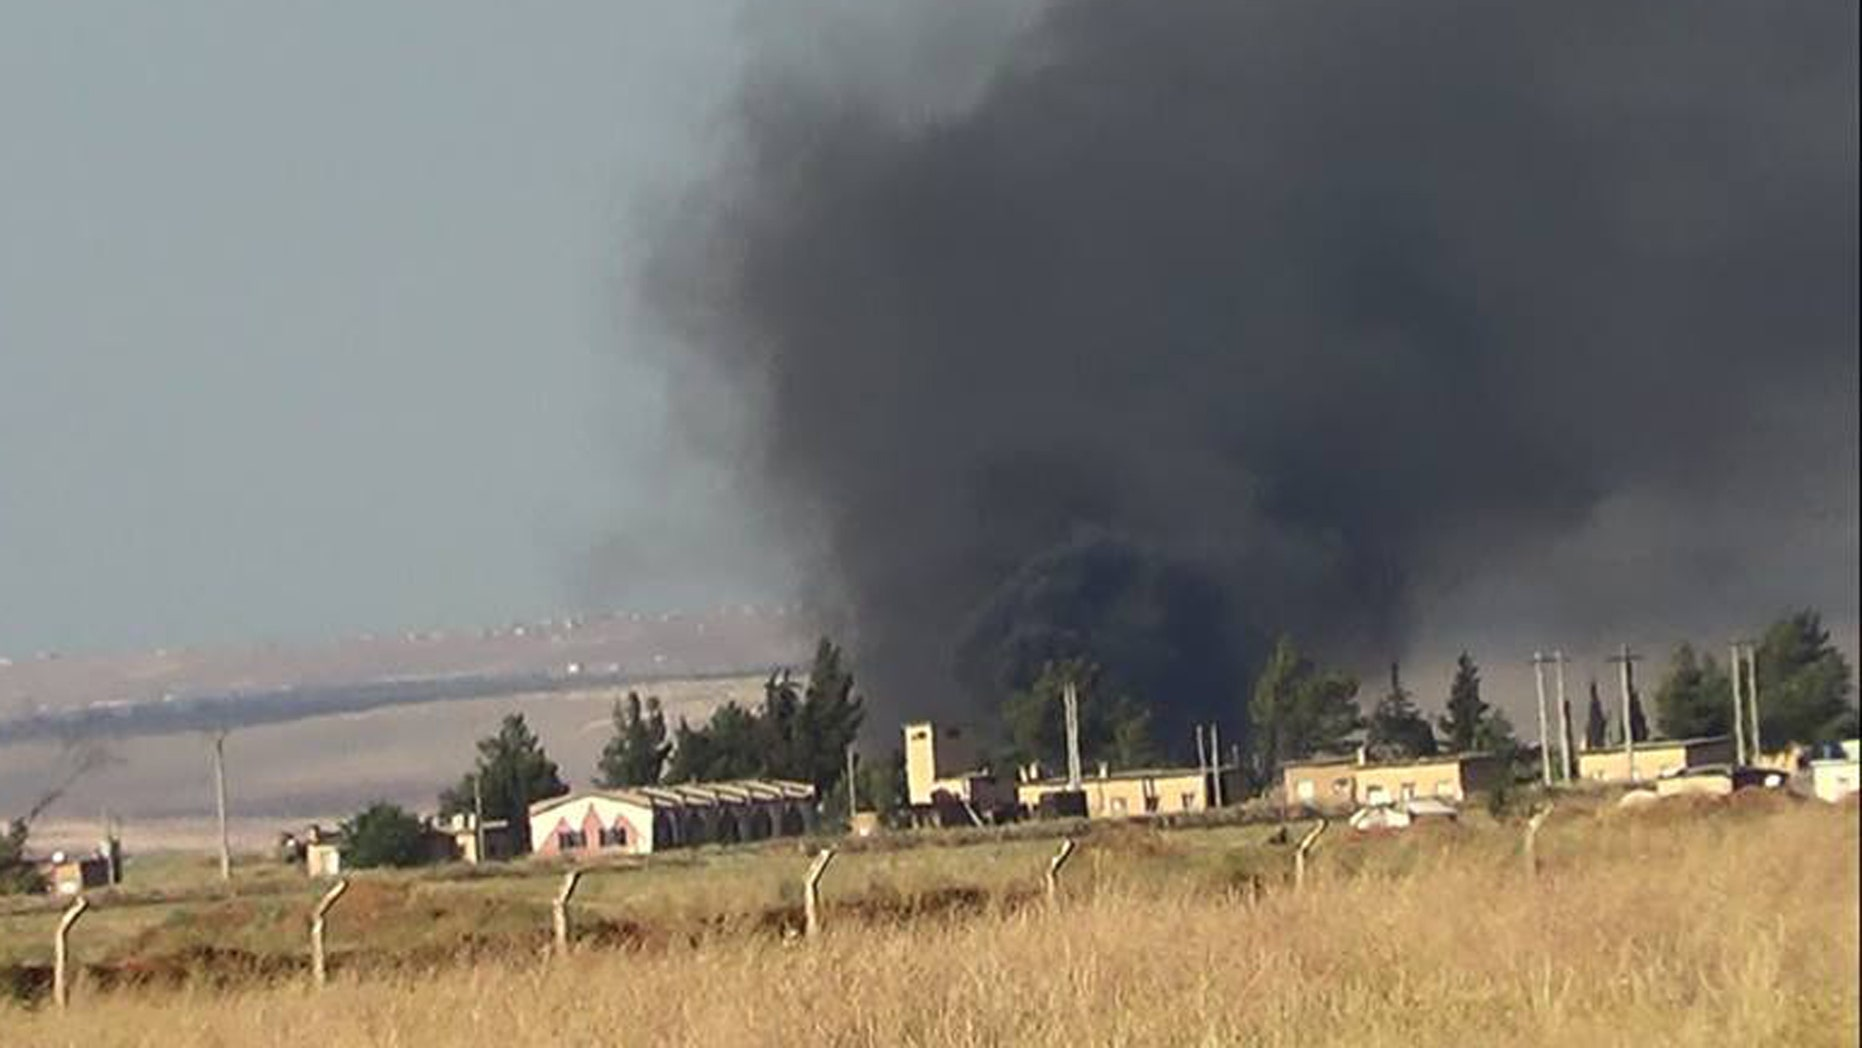 This citizen journalism image provided by Edlib News Network, ENN, which has been authenticated based on its contents and other AP reporting, shows black smoke rising from what rebels say is a helicopter that was shot down at Abu Dhour military airbase which is besieged by the rebels, in the northern province city of Idlib, Syria, Friday May 17, 2013. Rights activists have found torture devices and other evidence of abuse in government prisons in the first Syrian city to fall to the rebels, Human Rights Watch said in a report Friday. (AP Photo/Edlib News Network ENN)